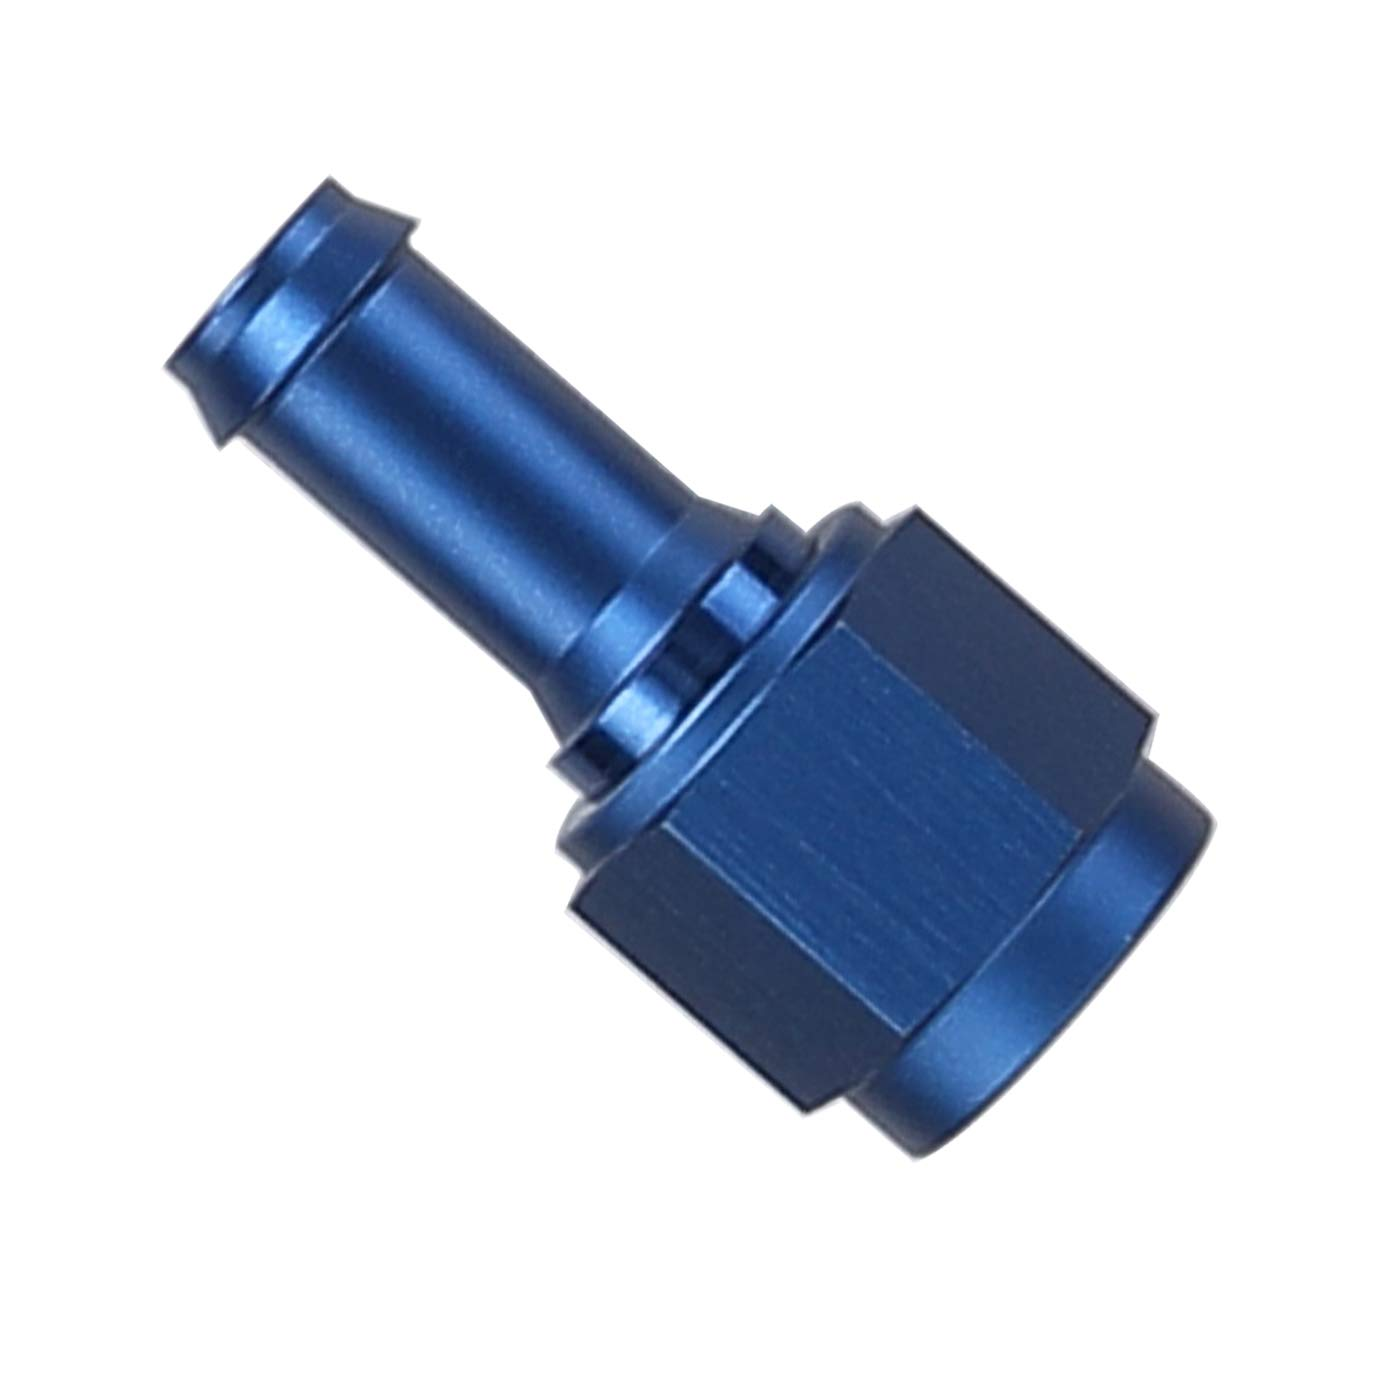 Blue Hose Barb Push On Fitting Barb Fuel Pipe Adapter Aluminum 45 Degree 3//4 NPT Male to 3//4 18.7mm